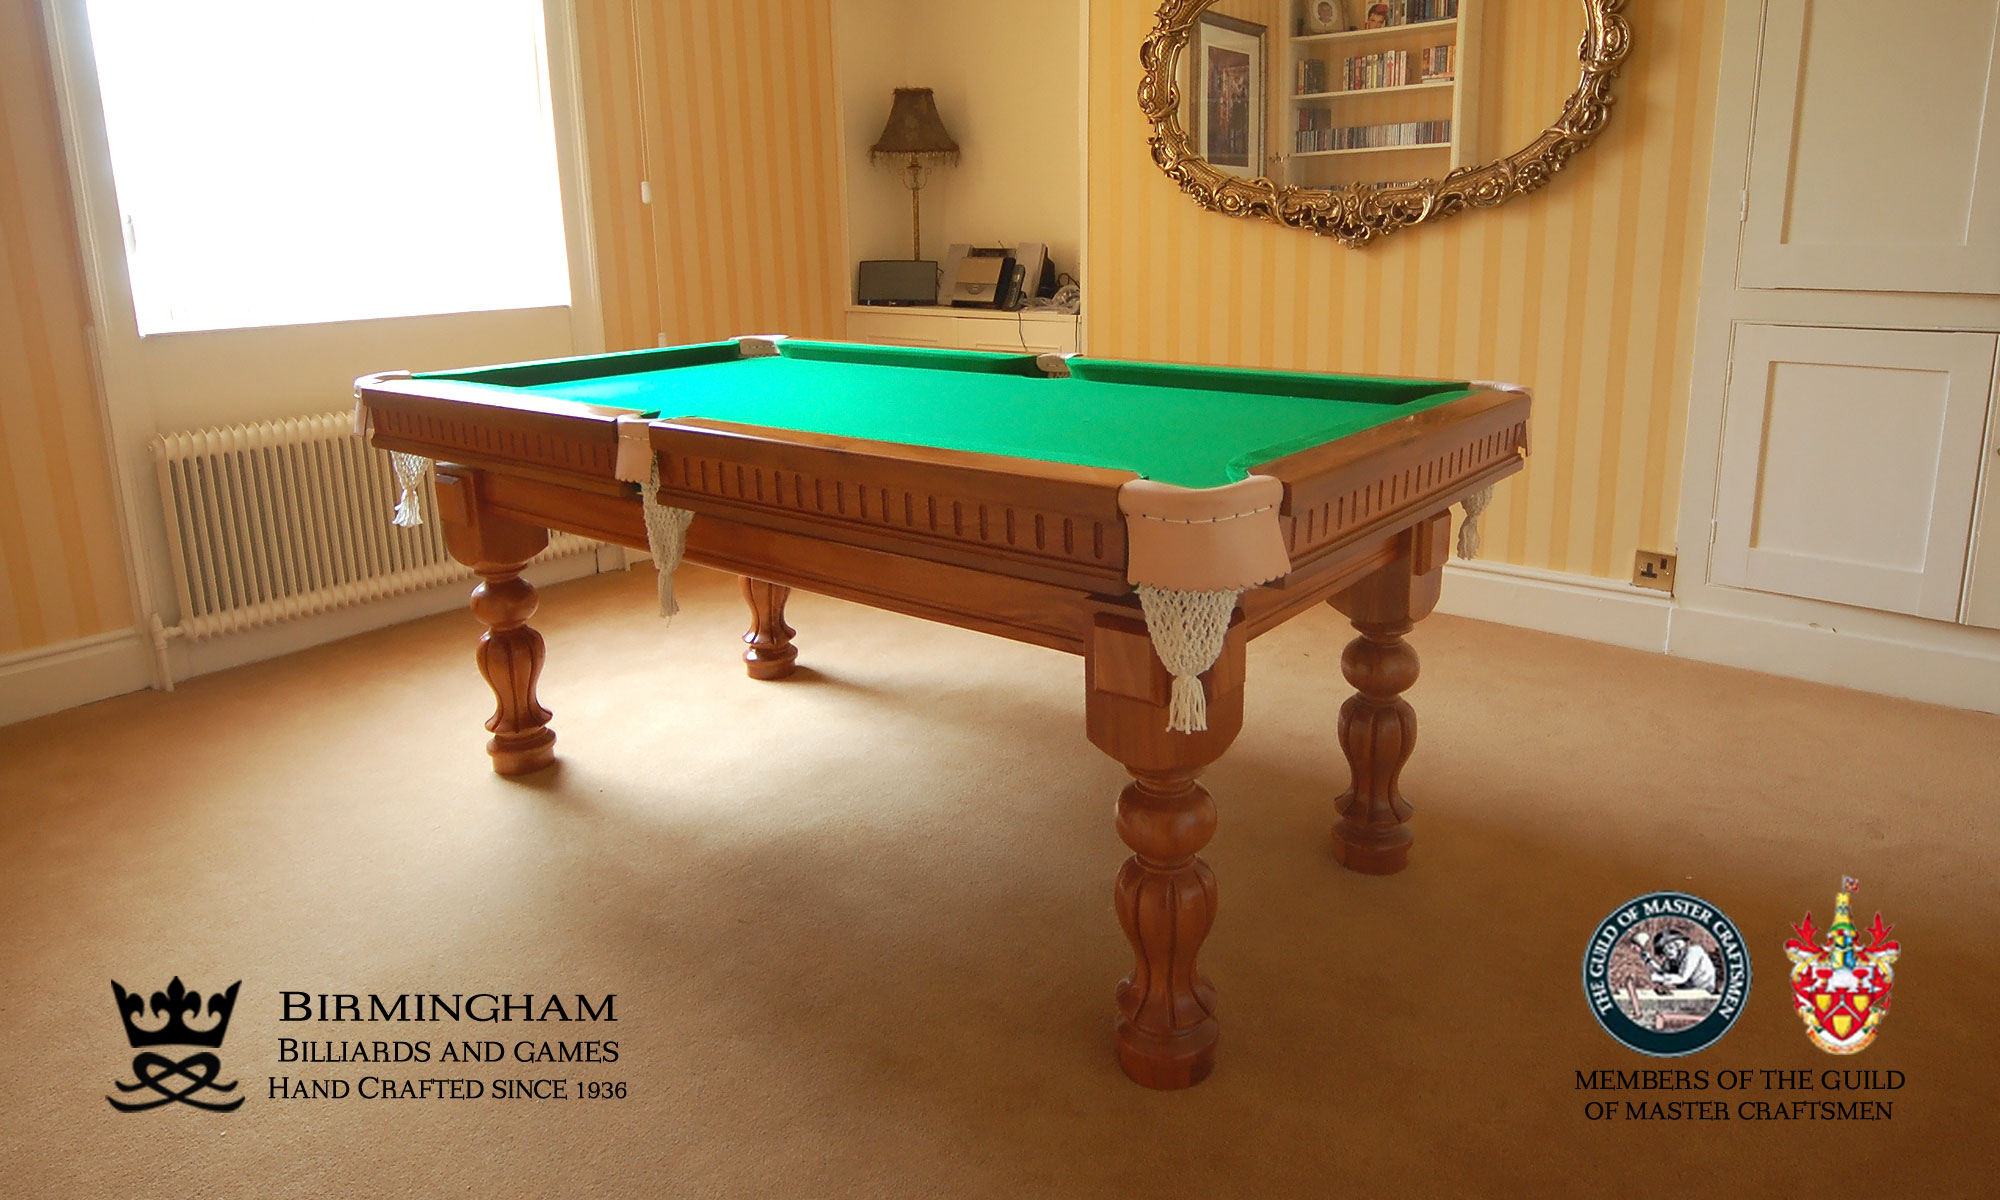 Timeless classic pool table, tulip style